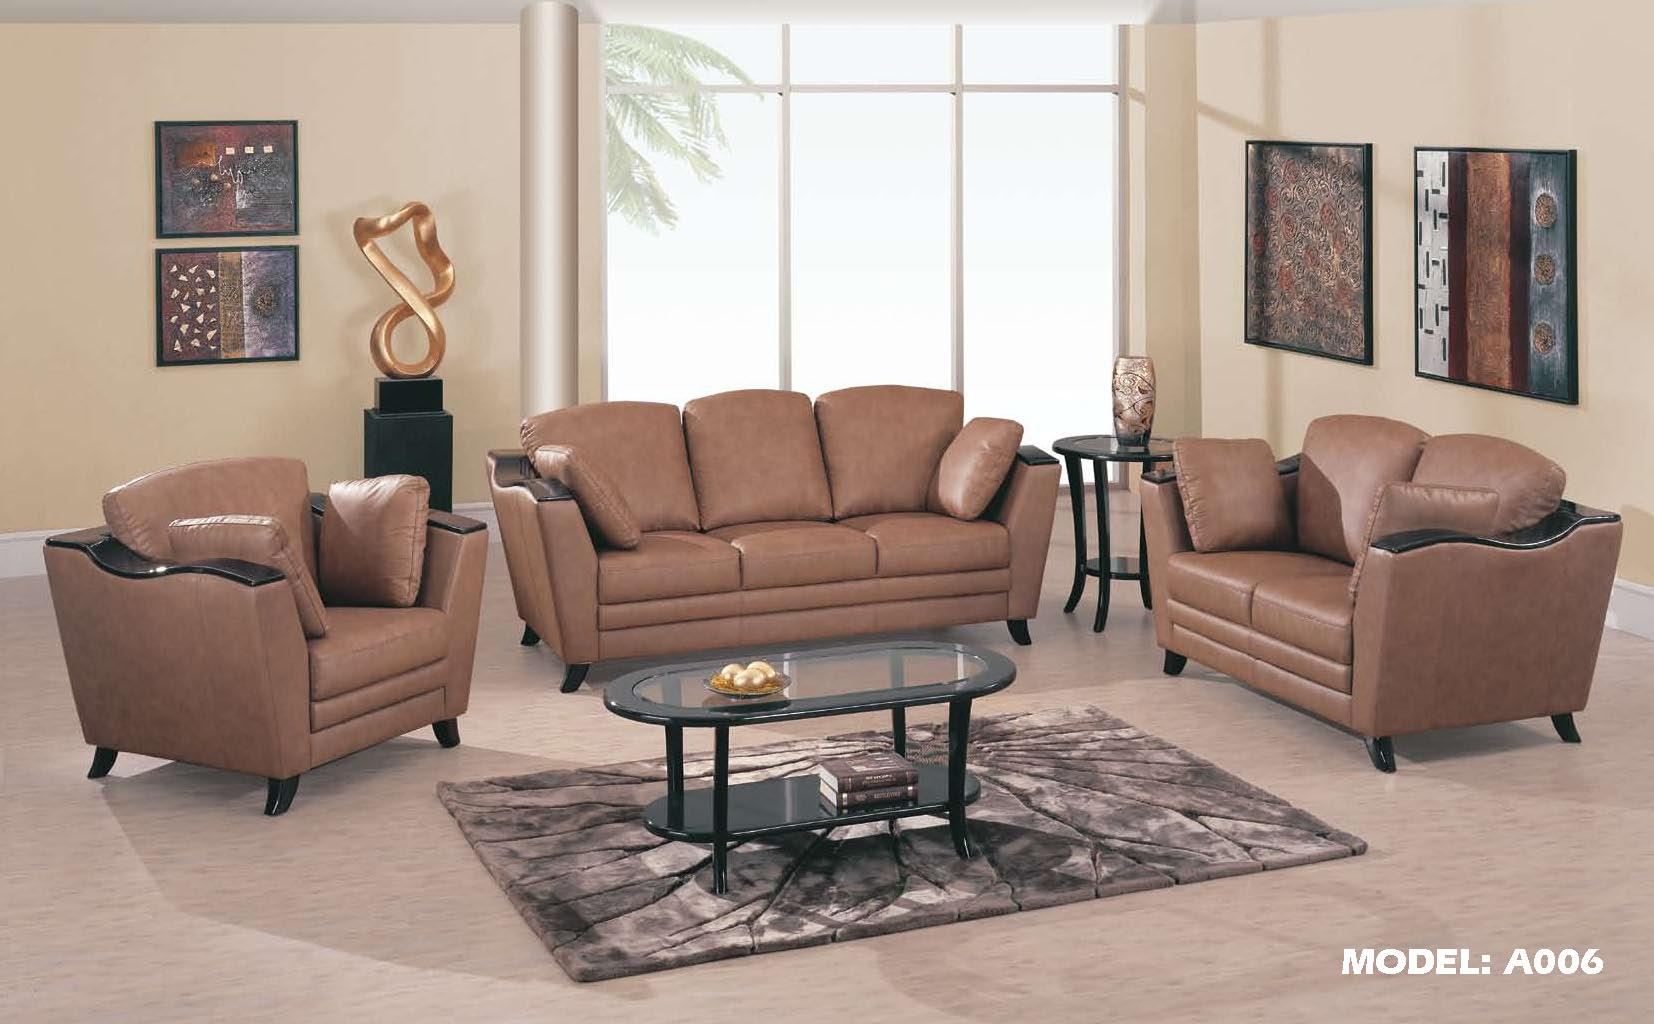 Light Dark Brown Colored Living Room Furniture Main Blog